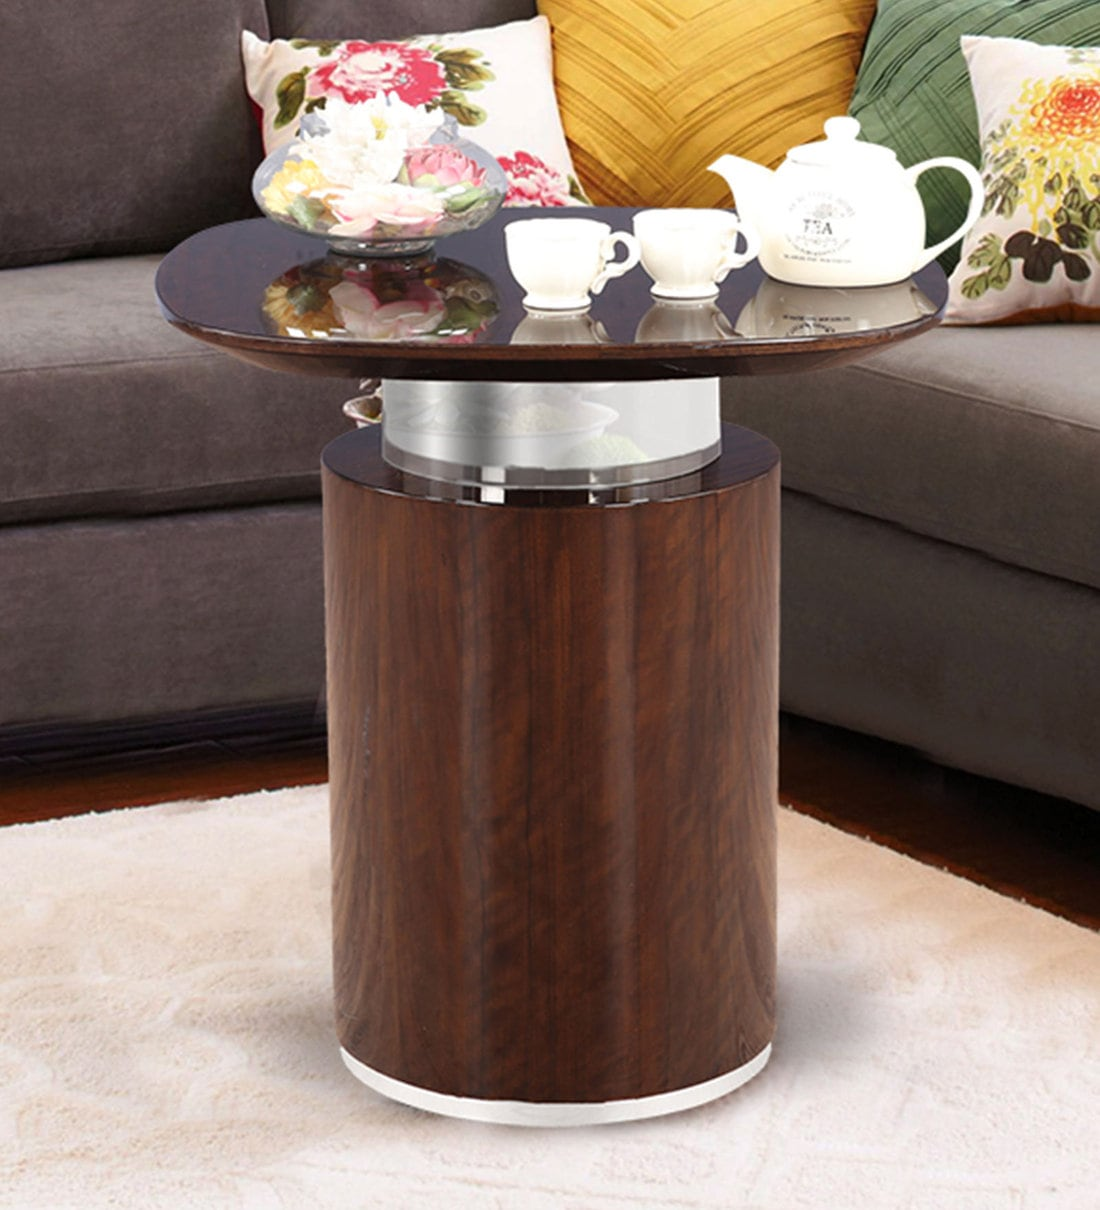 Buy Bernard End Table In Golden Teak Finish By Hometown Online Modern Night Stands Tables Furniture Pepperfry Product